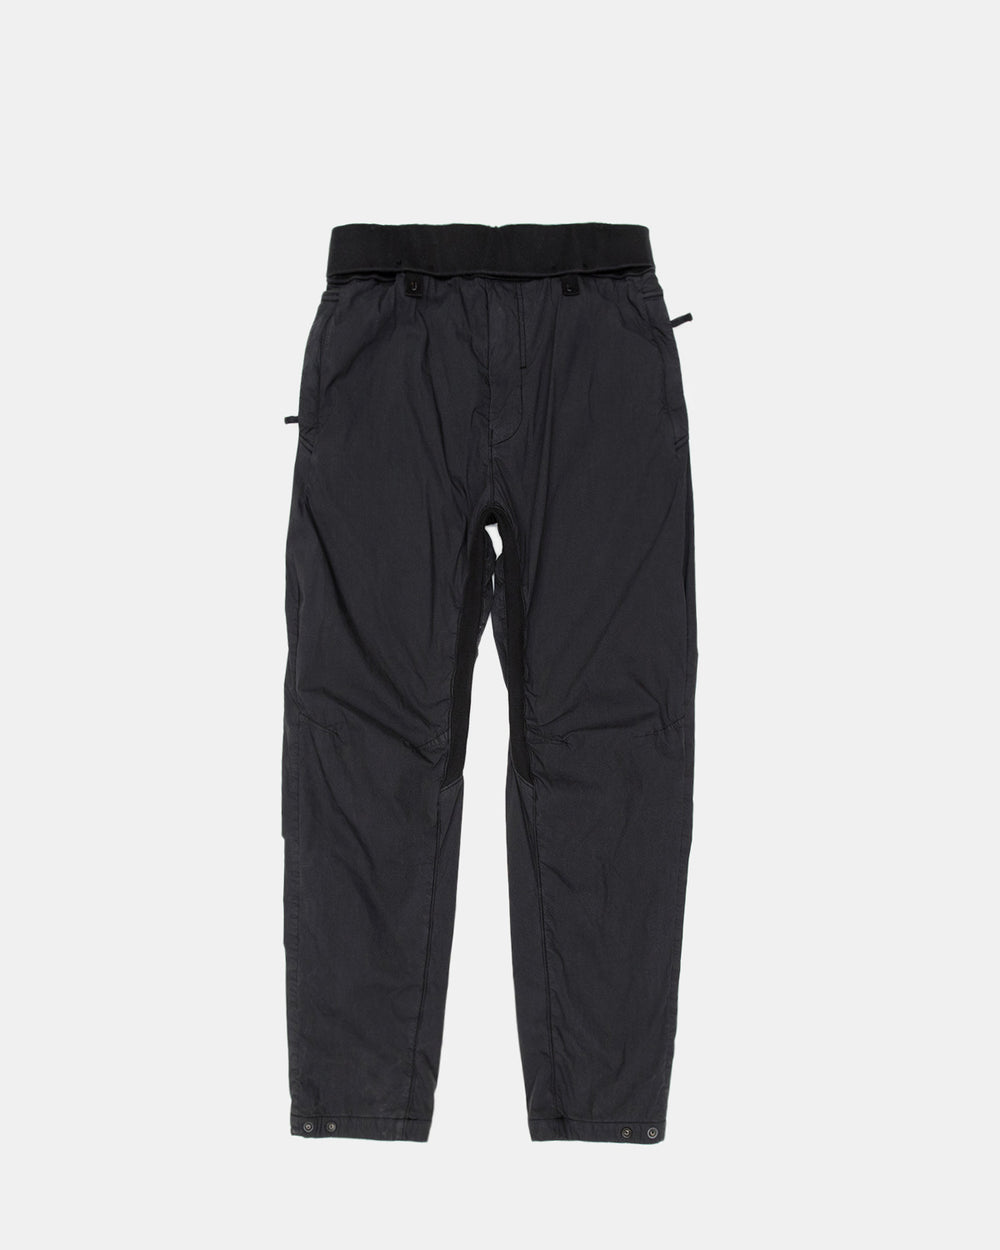 Stone Island - Shadow Project 30105 Extended Wide Pants (Black)